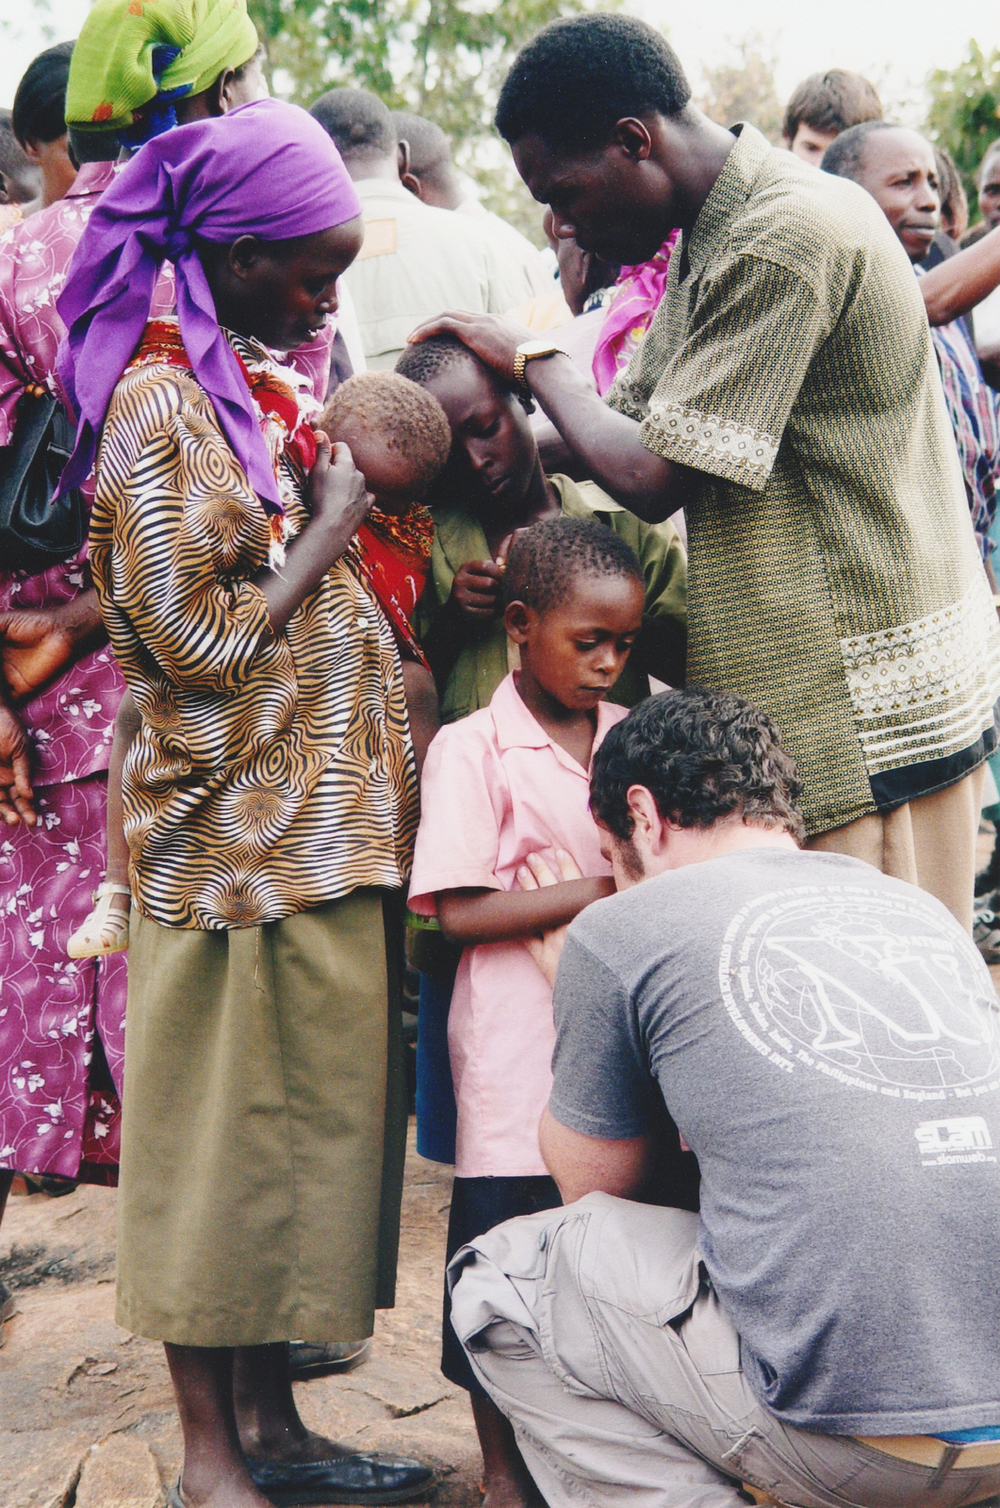 So many individuals, from grandmothers to little babies, were sick with prevailing health concerns that they could not afford to 'fix.' We believed that God could heal them, prayed for them, and watched him faithfully respond.